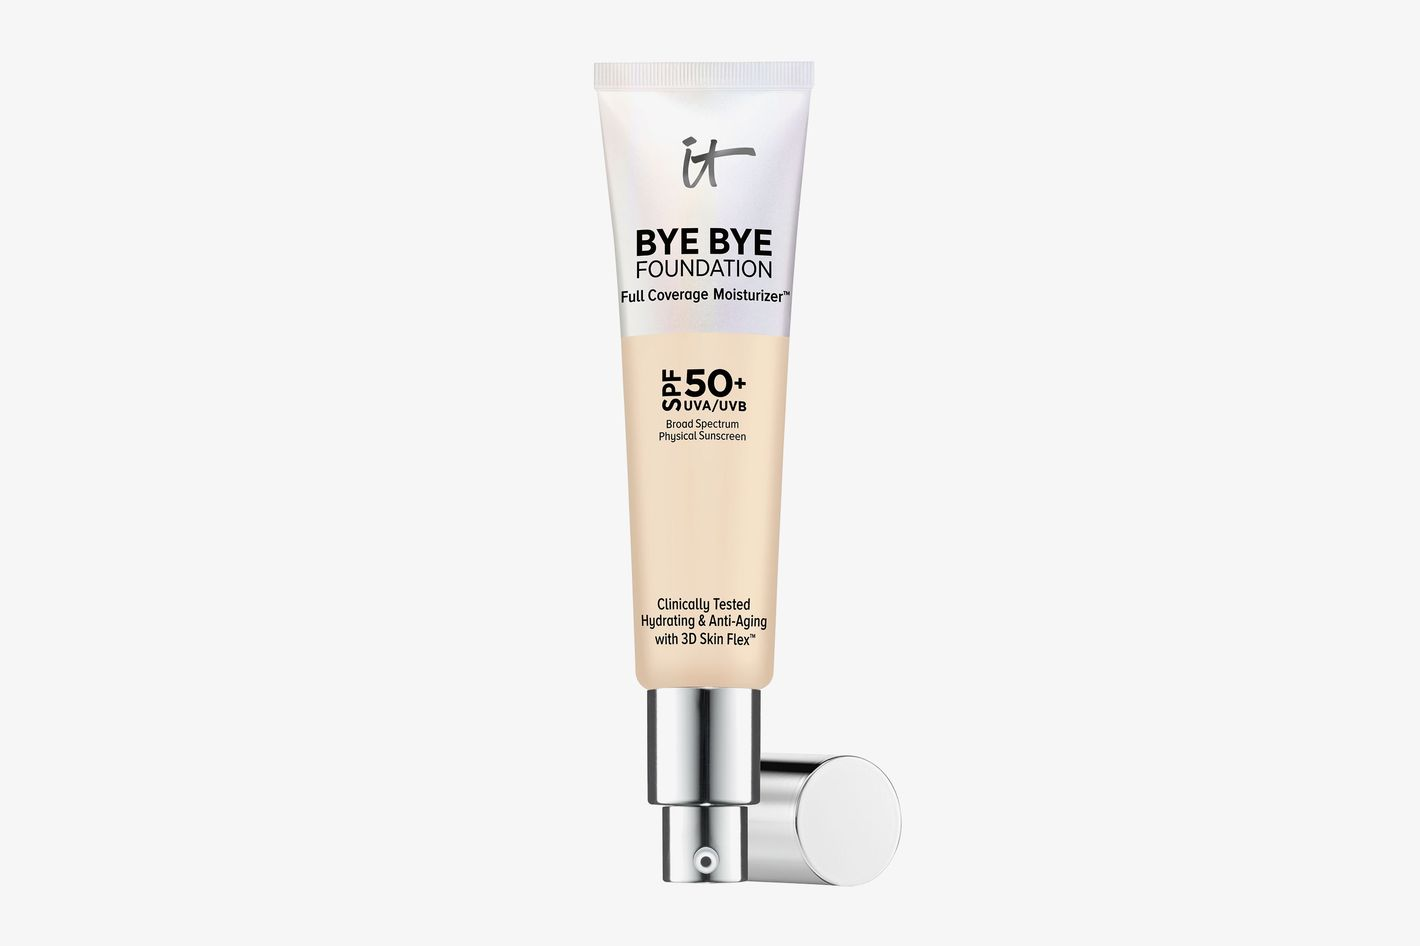 Bye Bye Foundation Full Coverage Moisturizer with SPF 50+ Fair Light